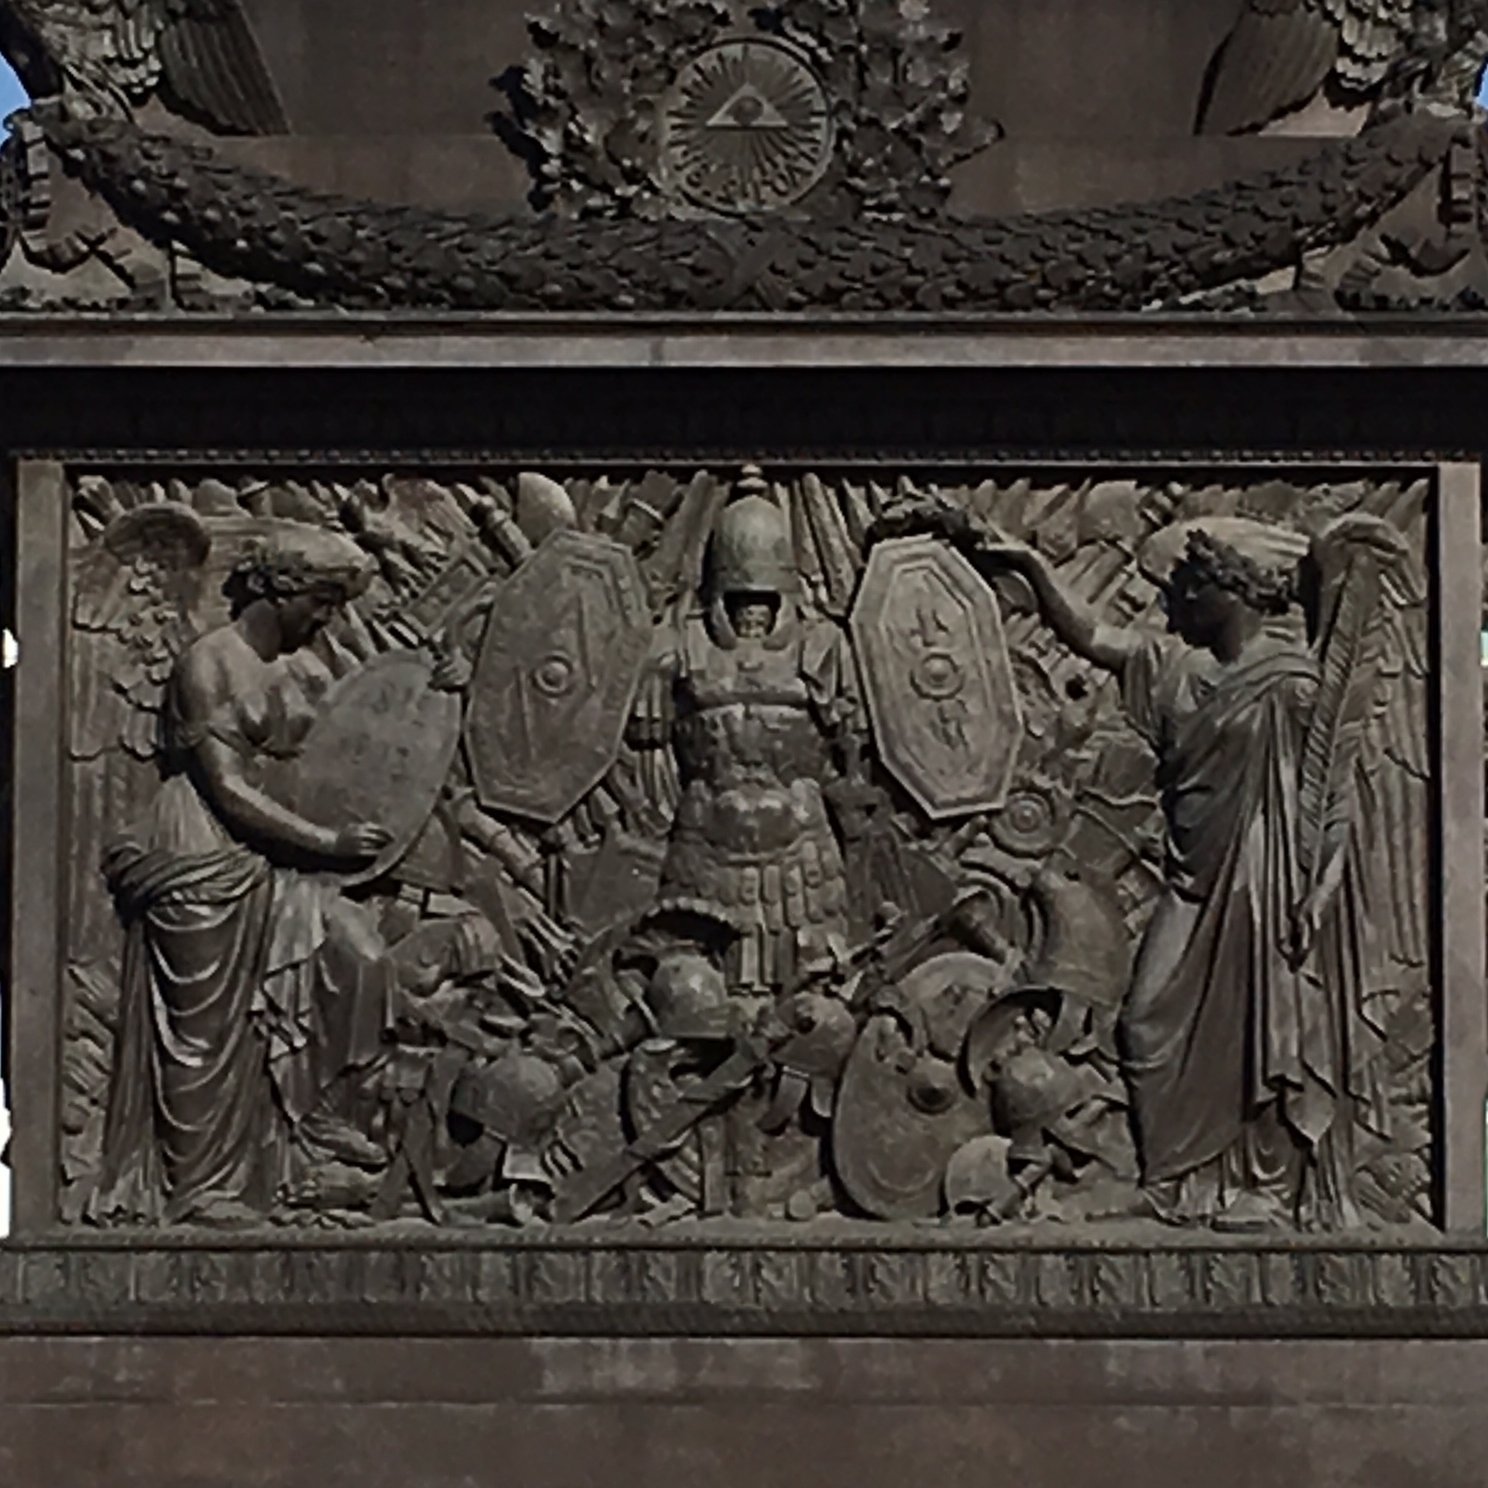 Details of the Alexander Column in Admiralty Square, St Petersburg by The Doubtful Traveller